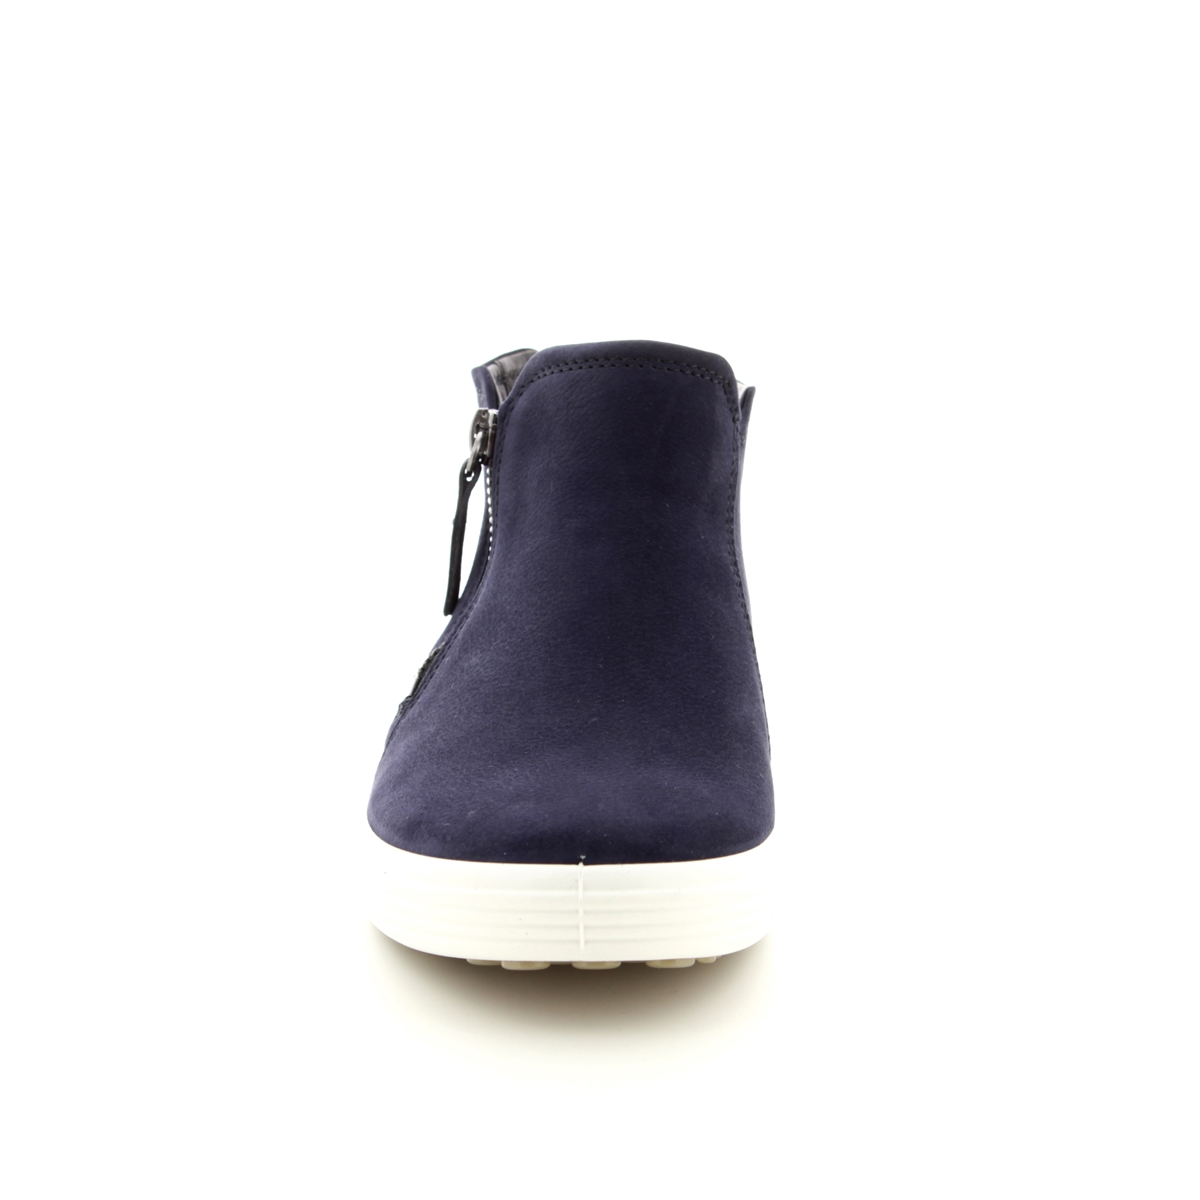 8c1b0a77da9bc ECCO Ankle Boots - Navy - 430243/02303 SOFT 7 LADIES BOOT